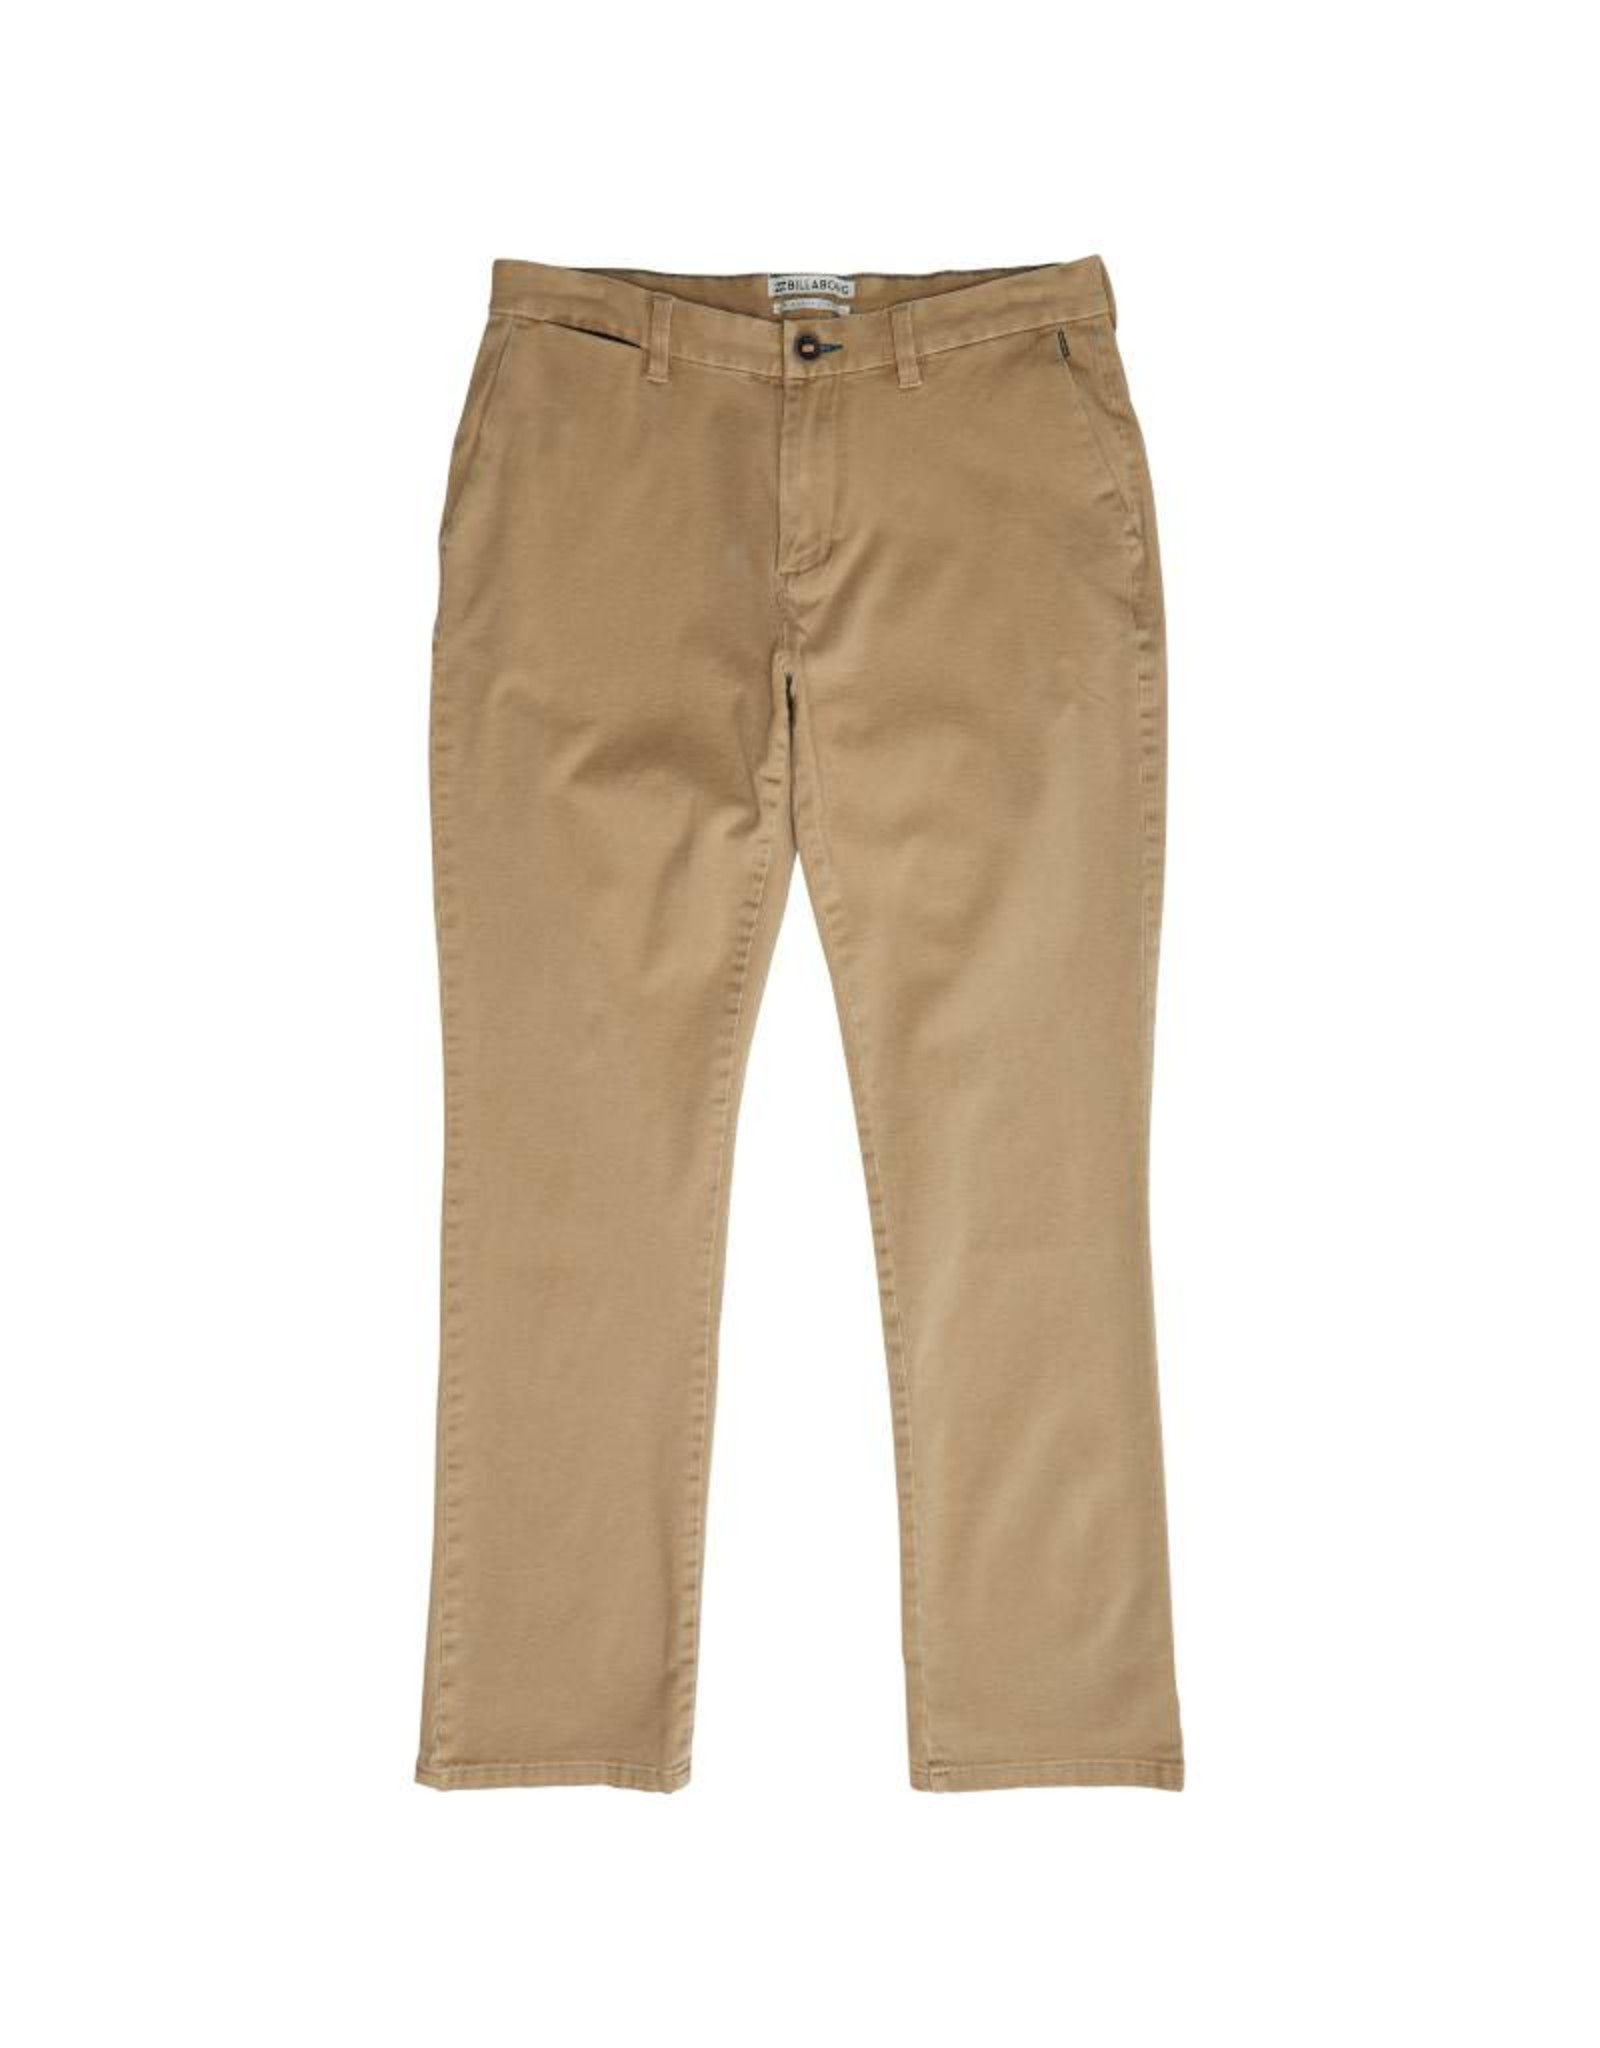 Billabong Billabong new order chino gravel